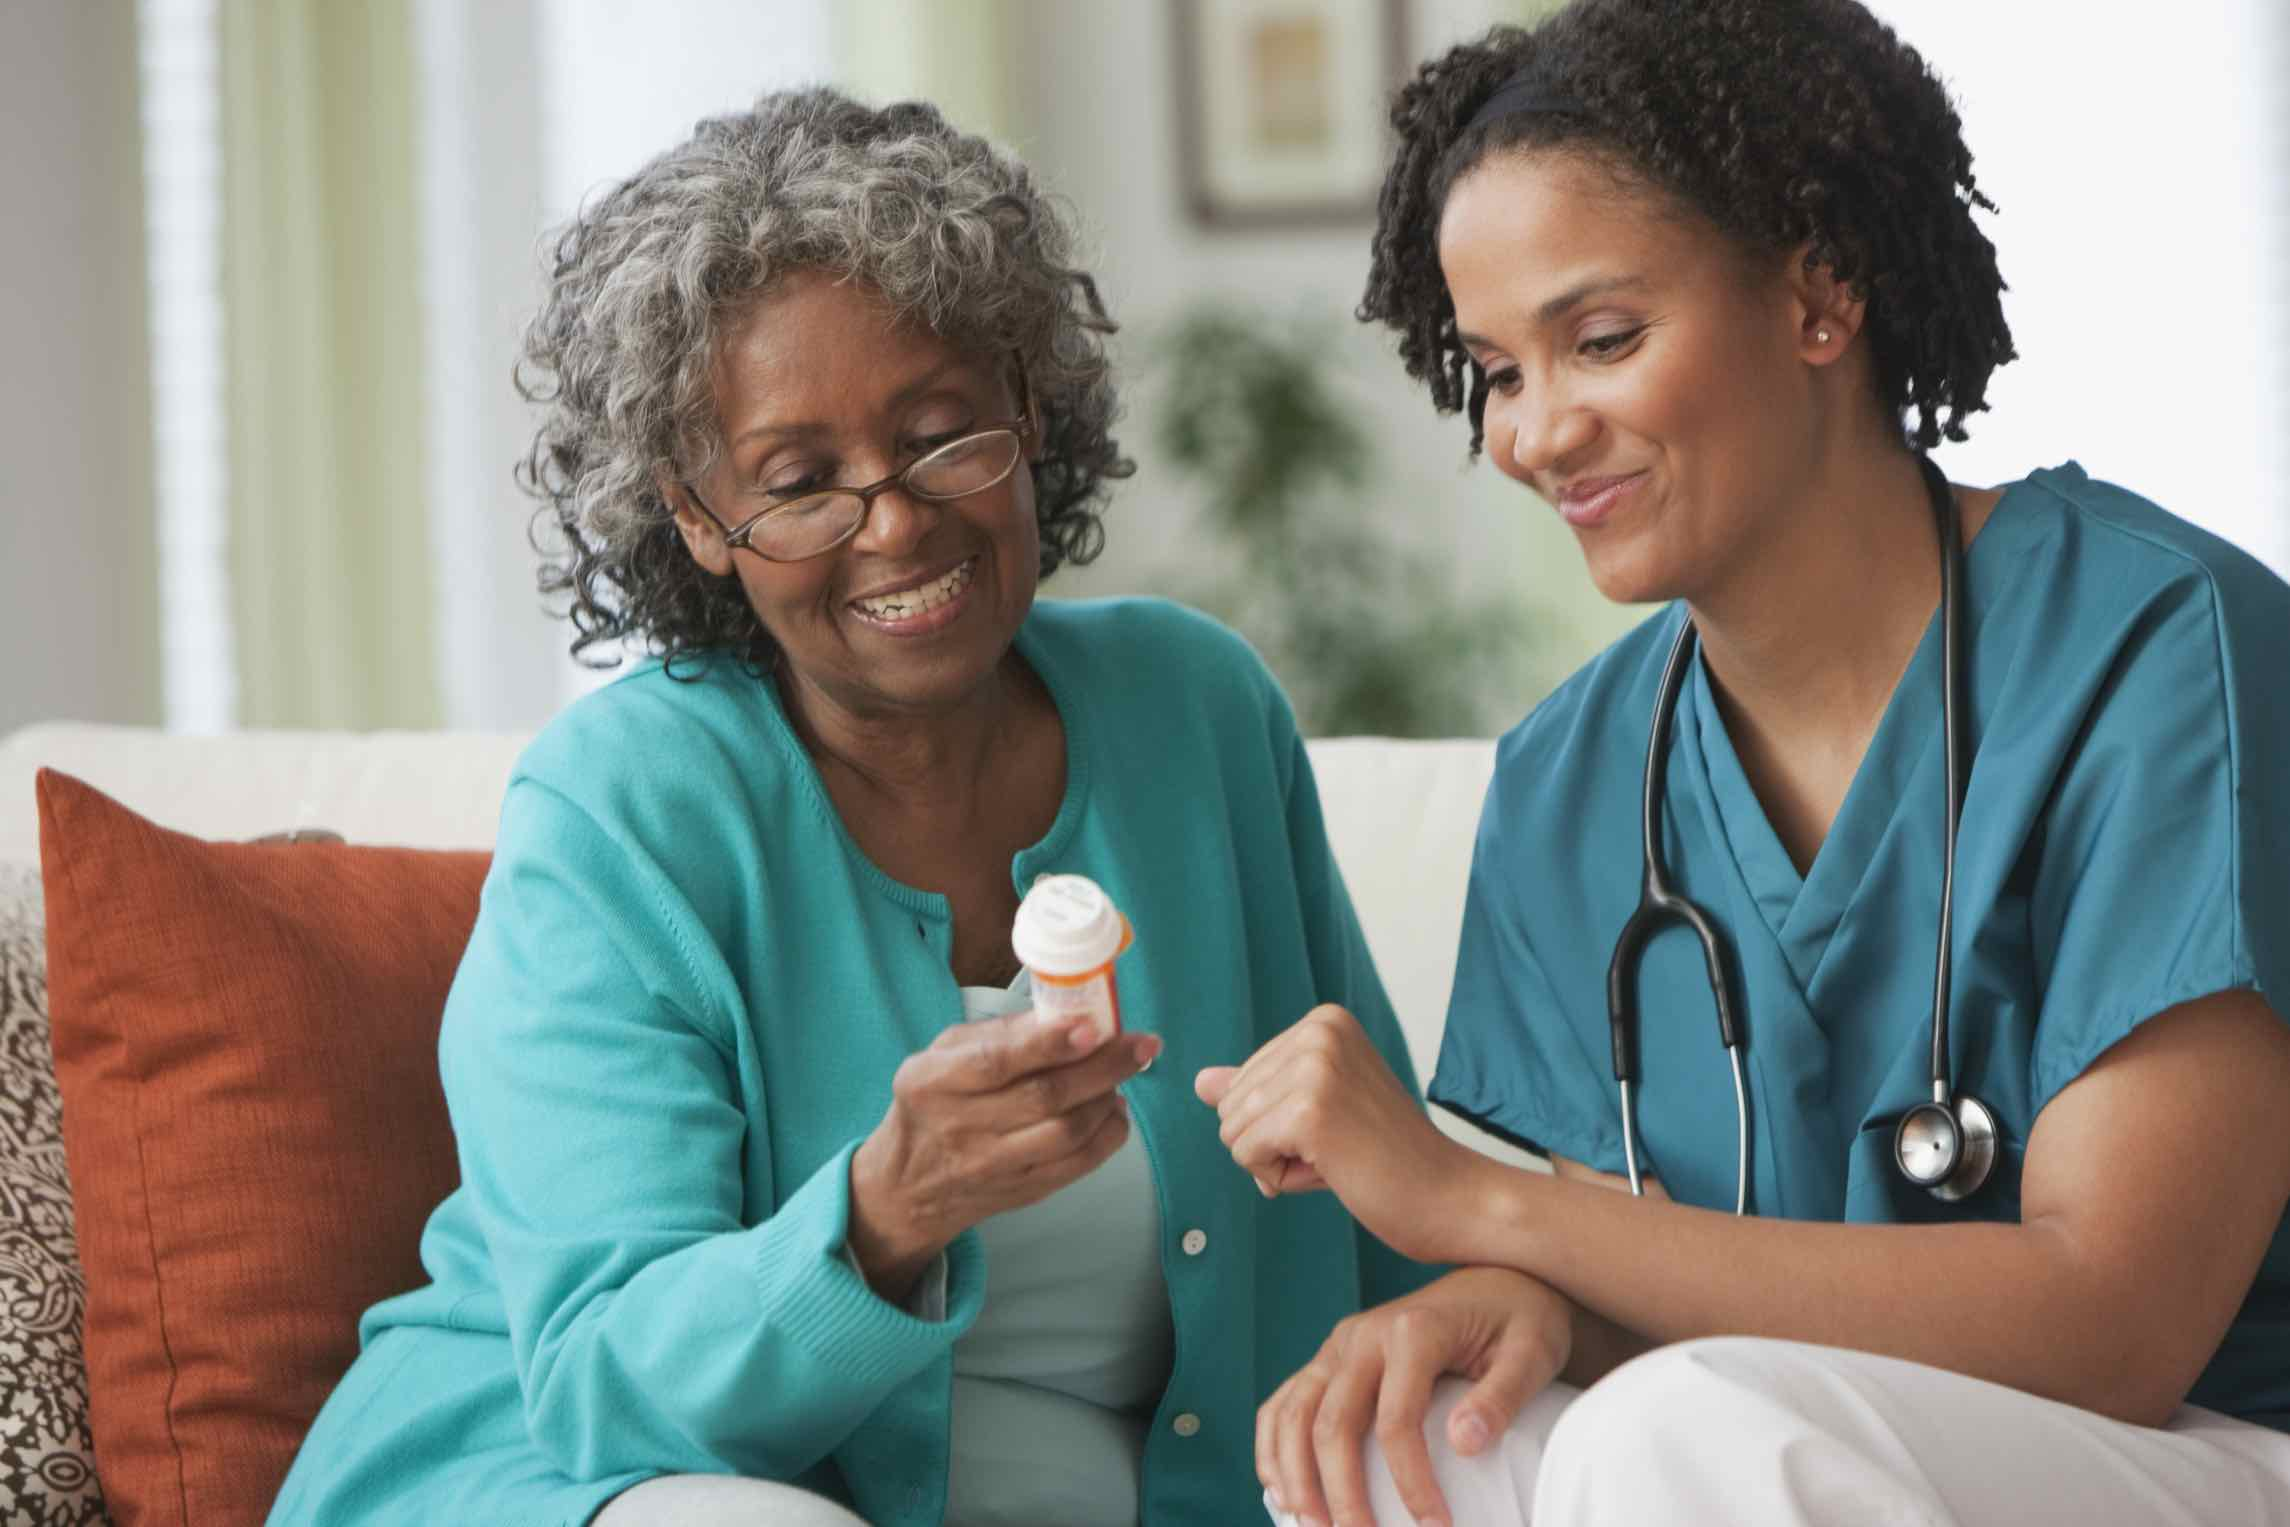 Home Health Care in Ohio, Columbus